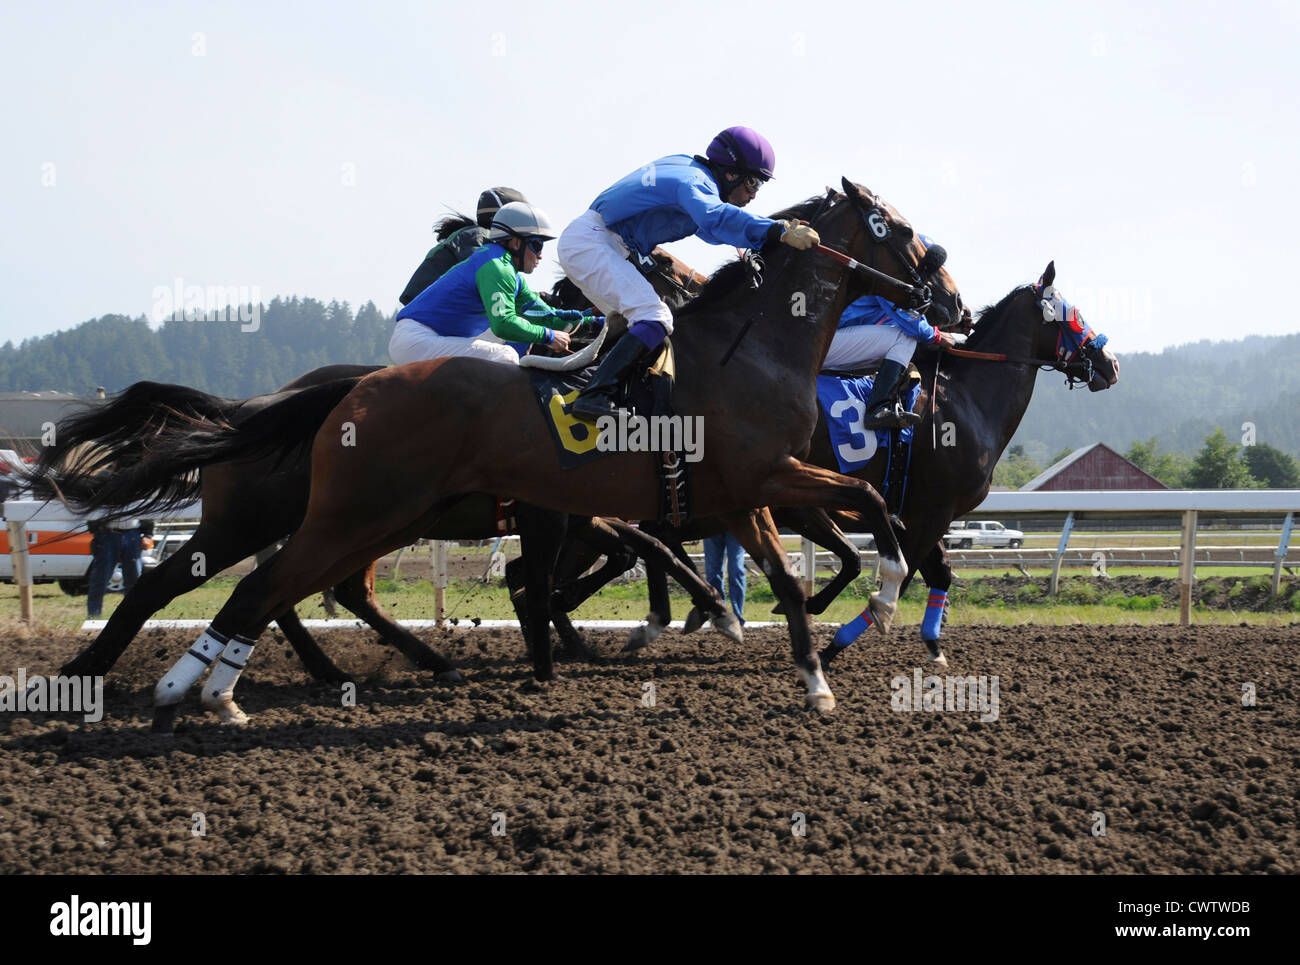 Horse racing at Humboldt County Fairgrounds in Ferndale, California - Stock Image